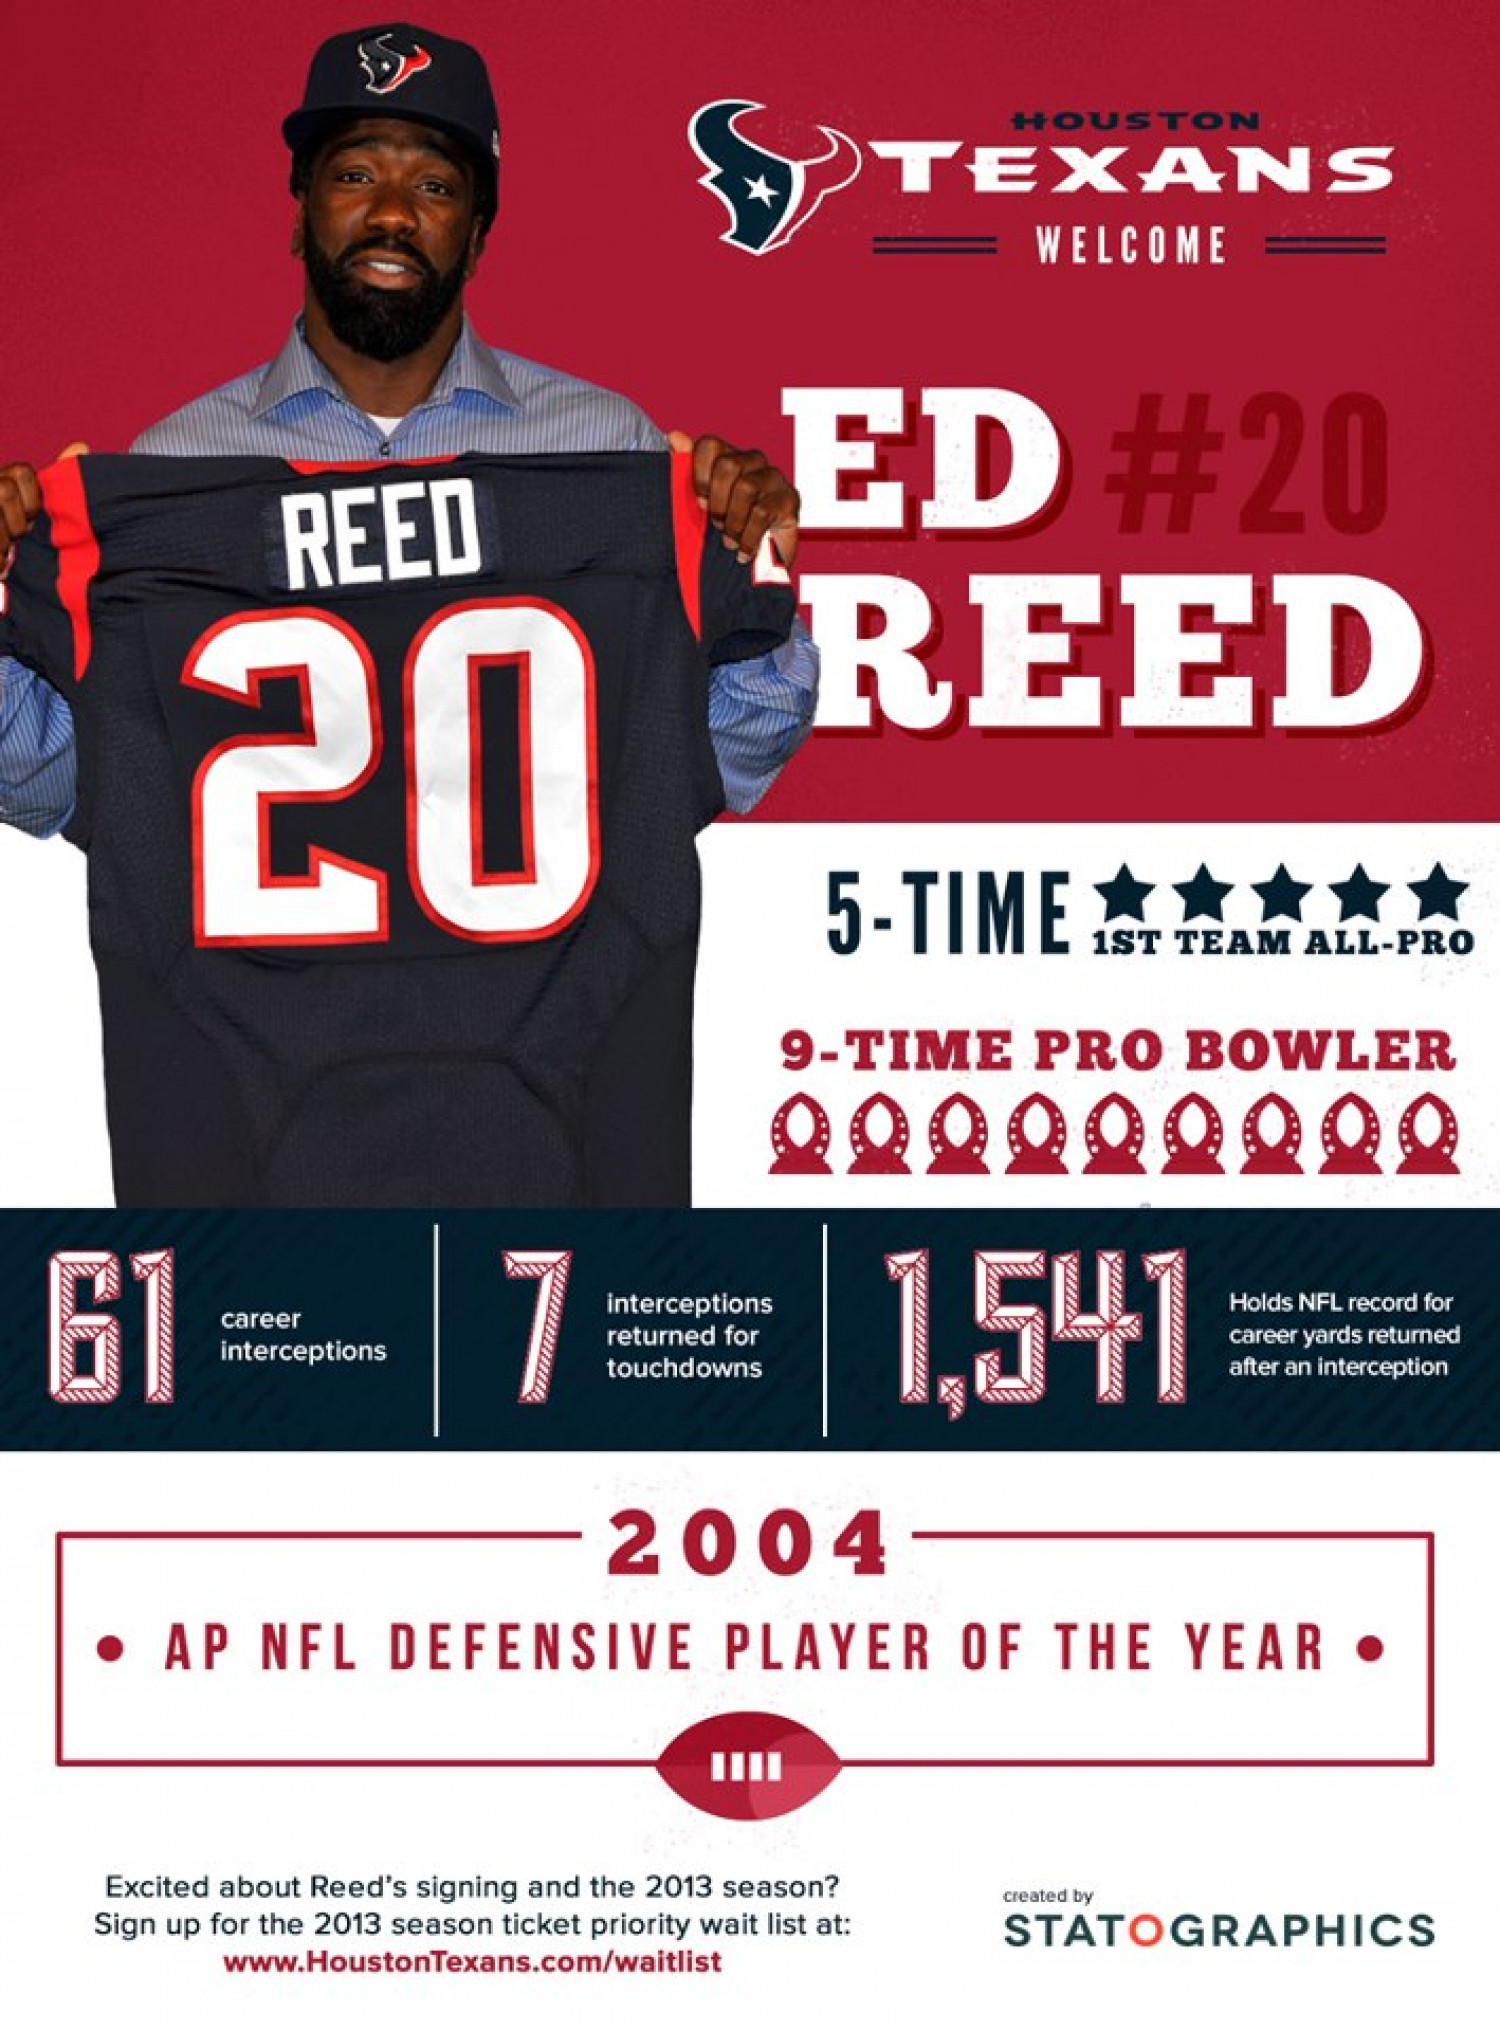 first rate fa447 e5e52 Texans Welcome Ed Reed | Visual.ly